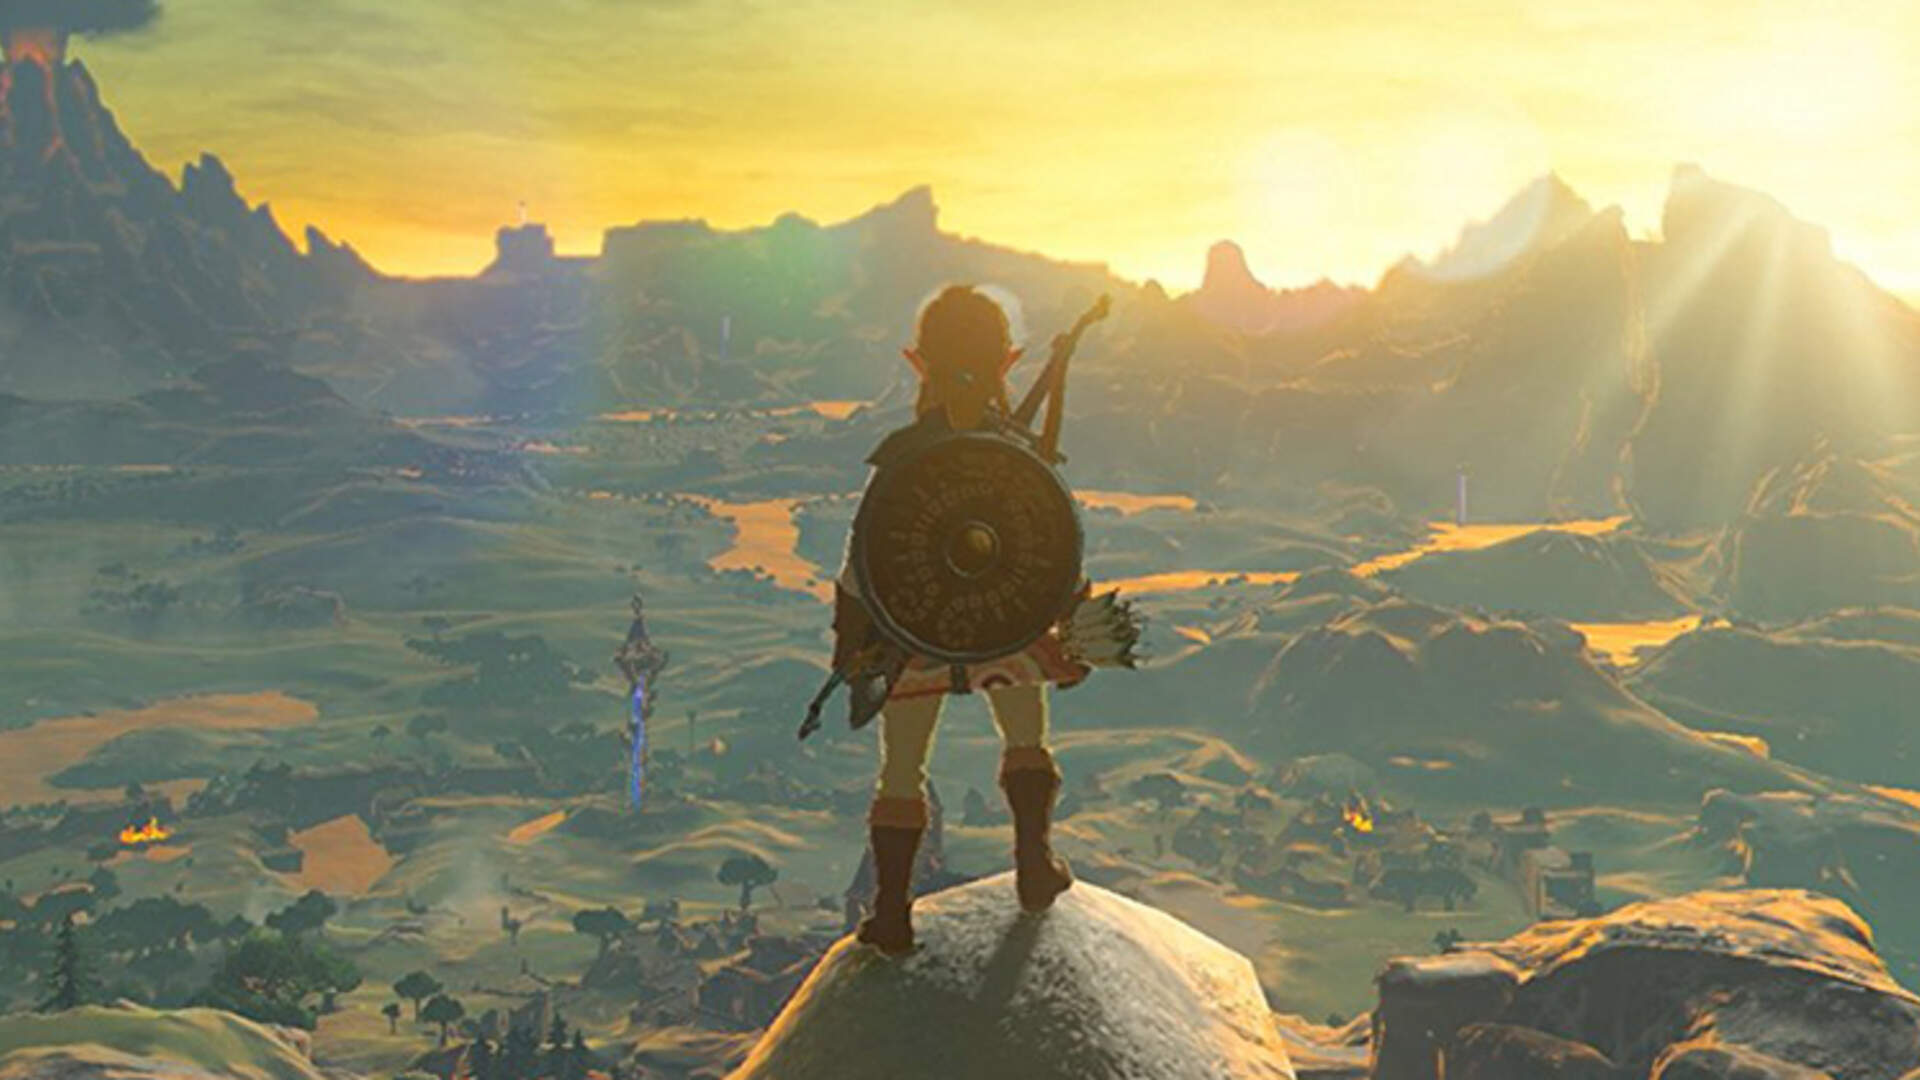 The Legend of Zelda: Breath of the Wild Wins Big At The Game Awards 2017